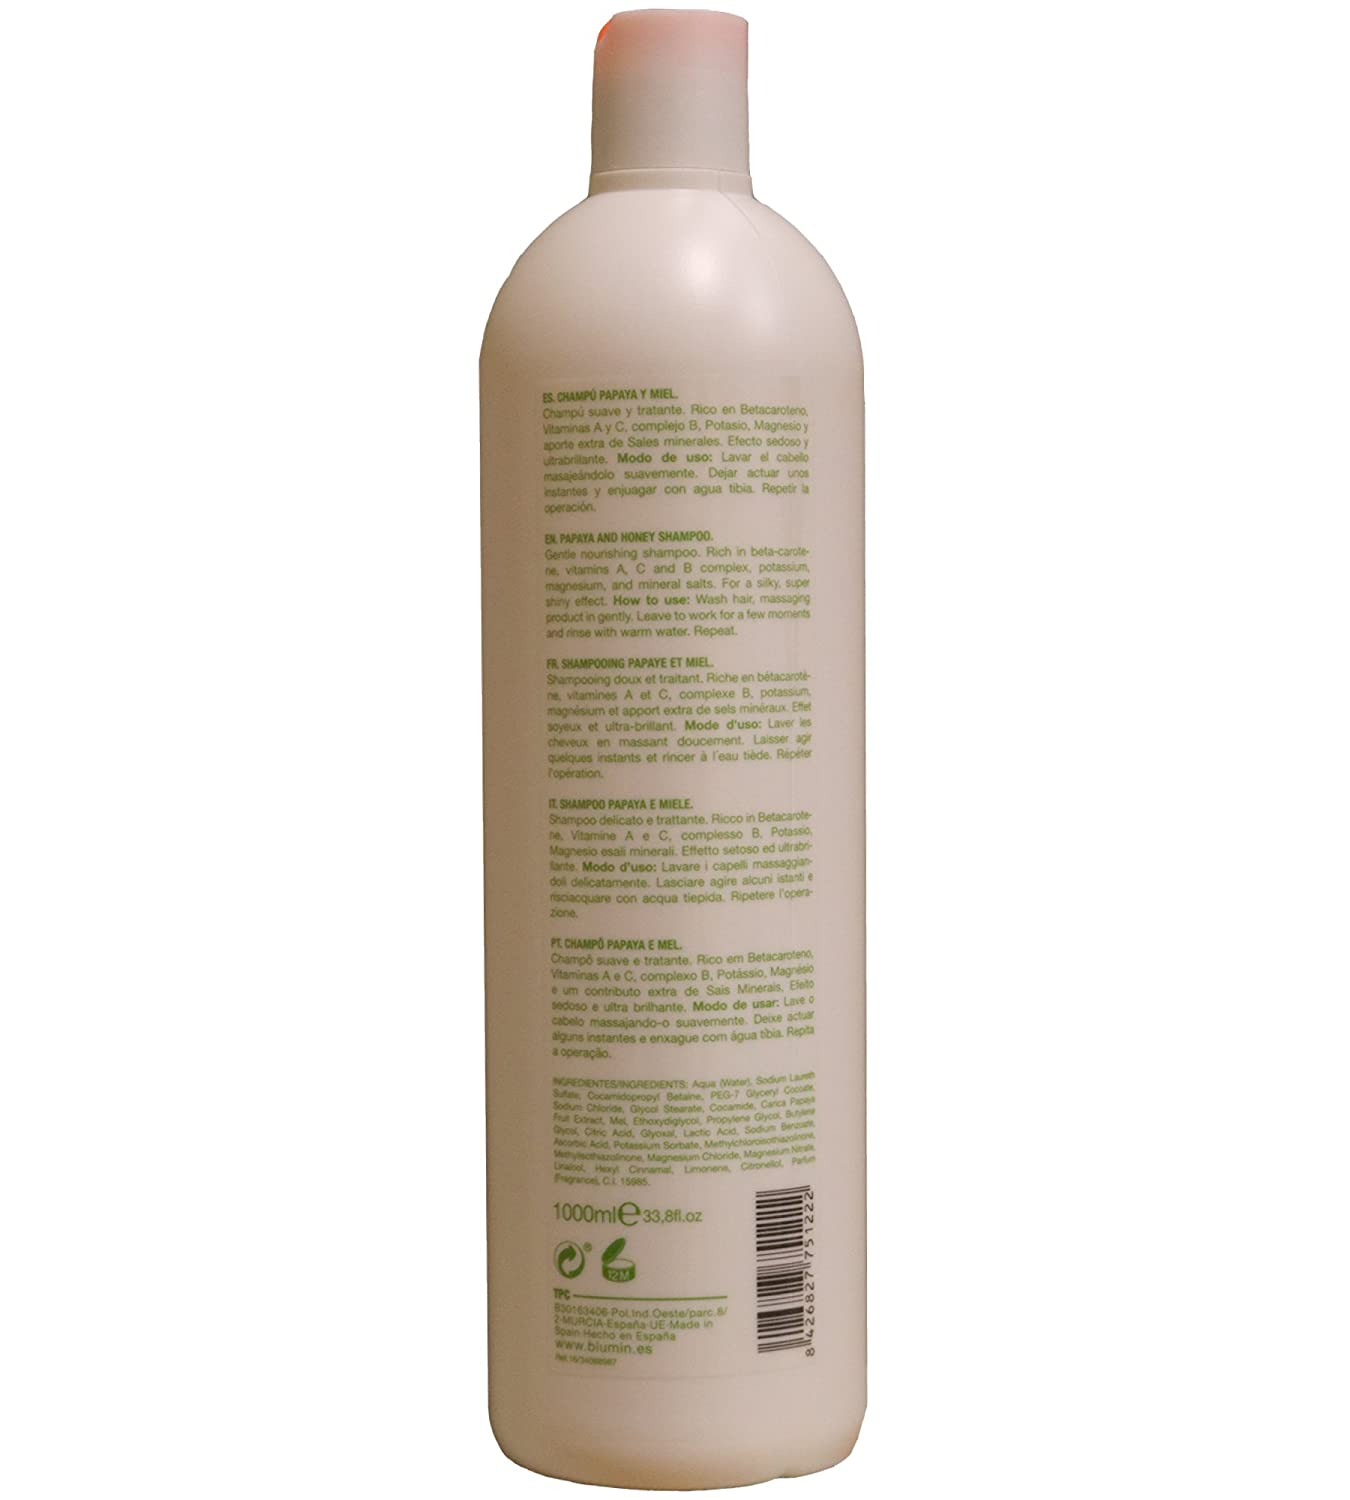 Amazon.com: Blumin Papaya and Honey Shampoo 1000ml: Health & Personal Care